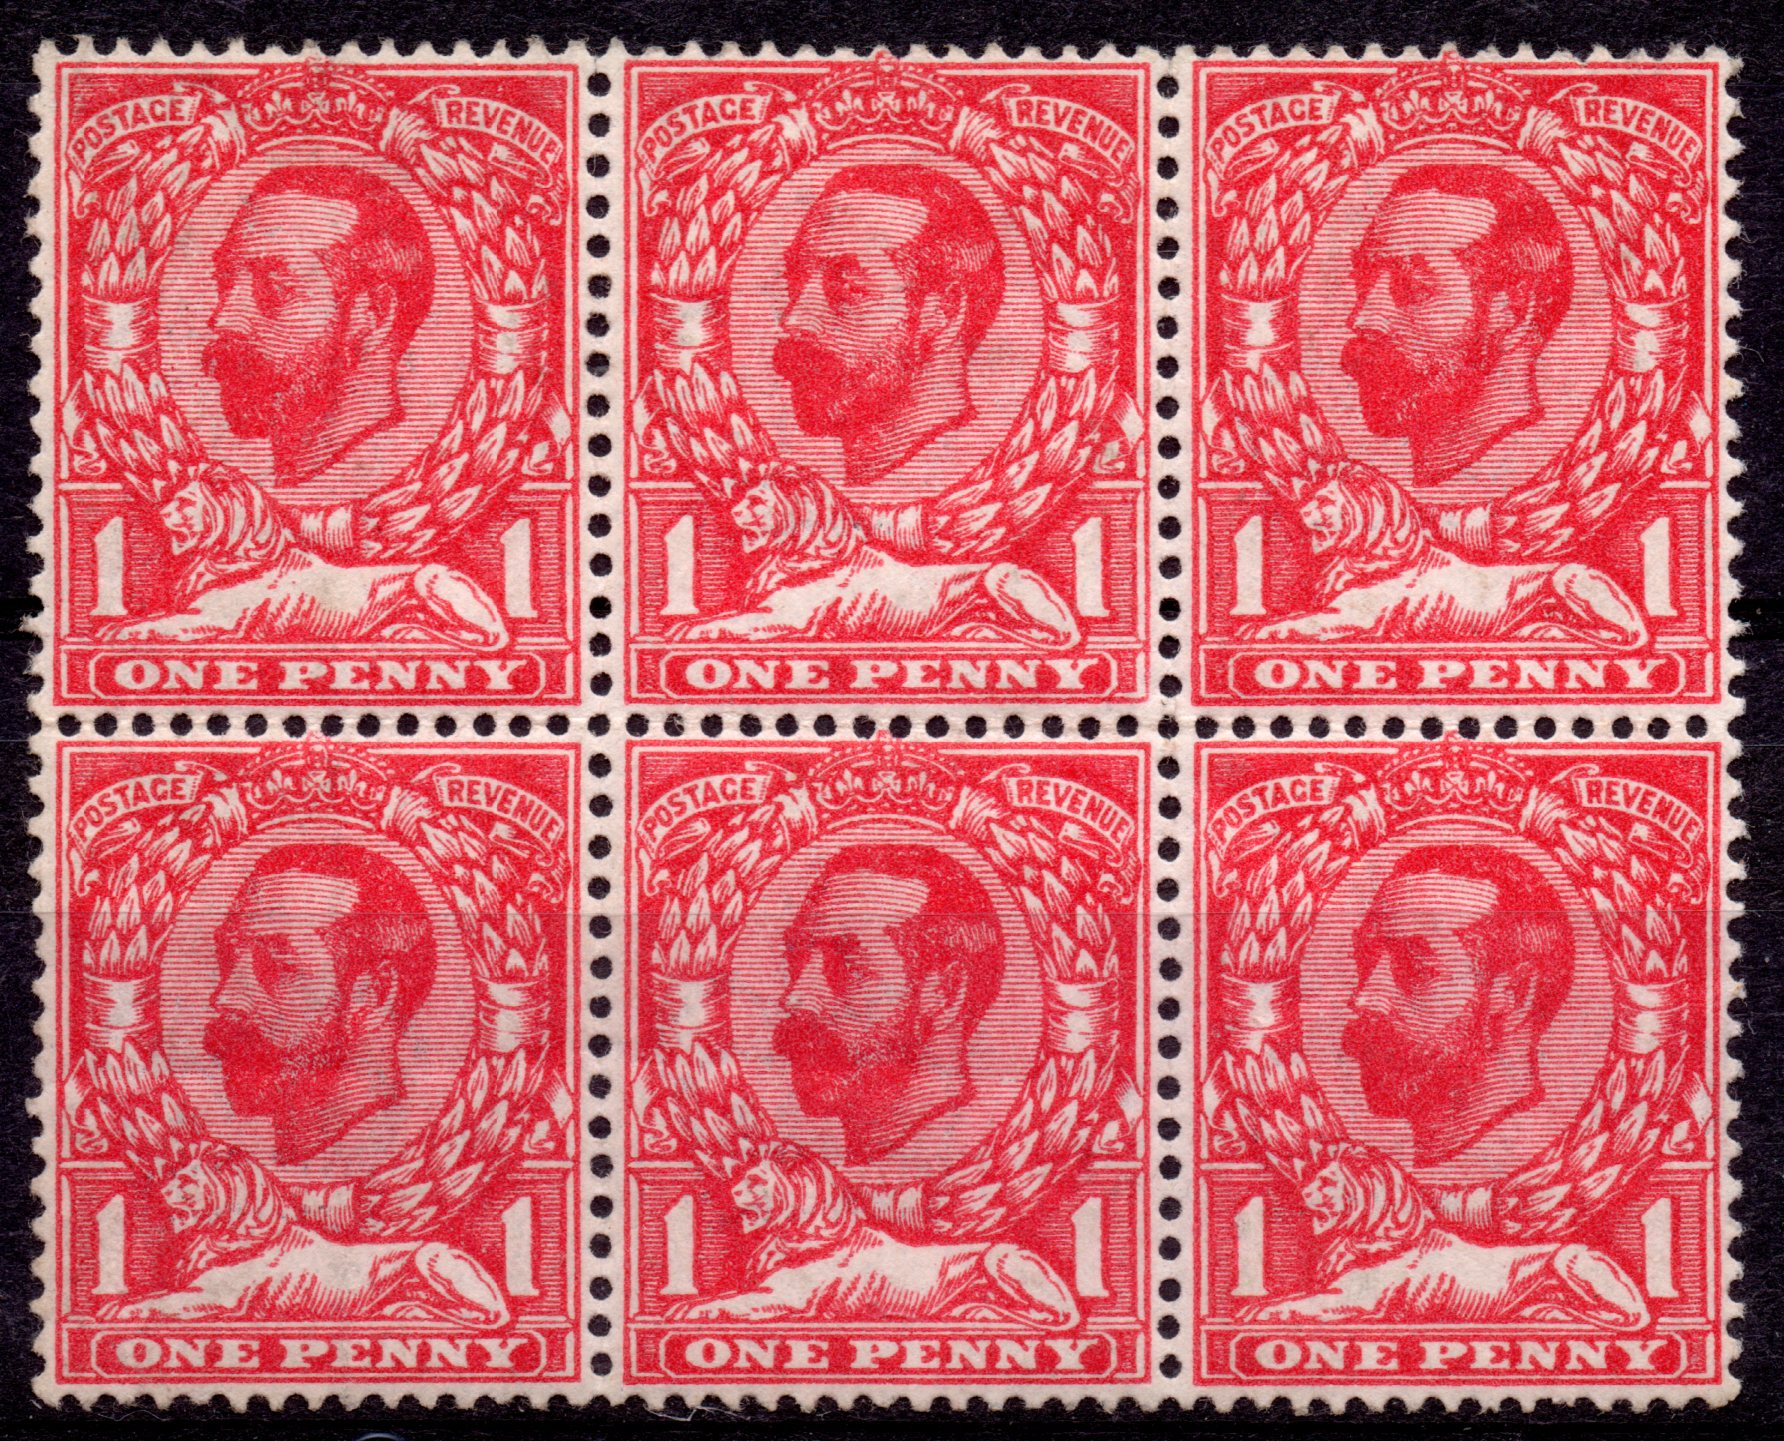 1911 1d Deep Carmine-red UM Block of Six with Crown Variety